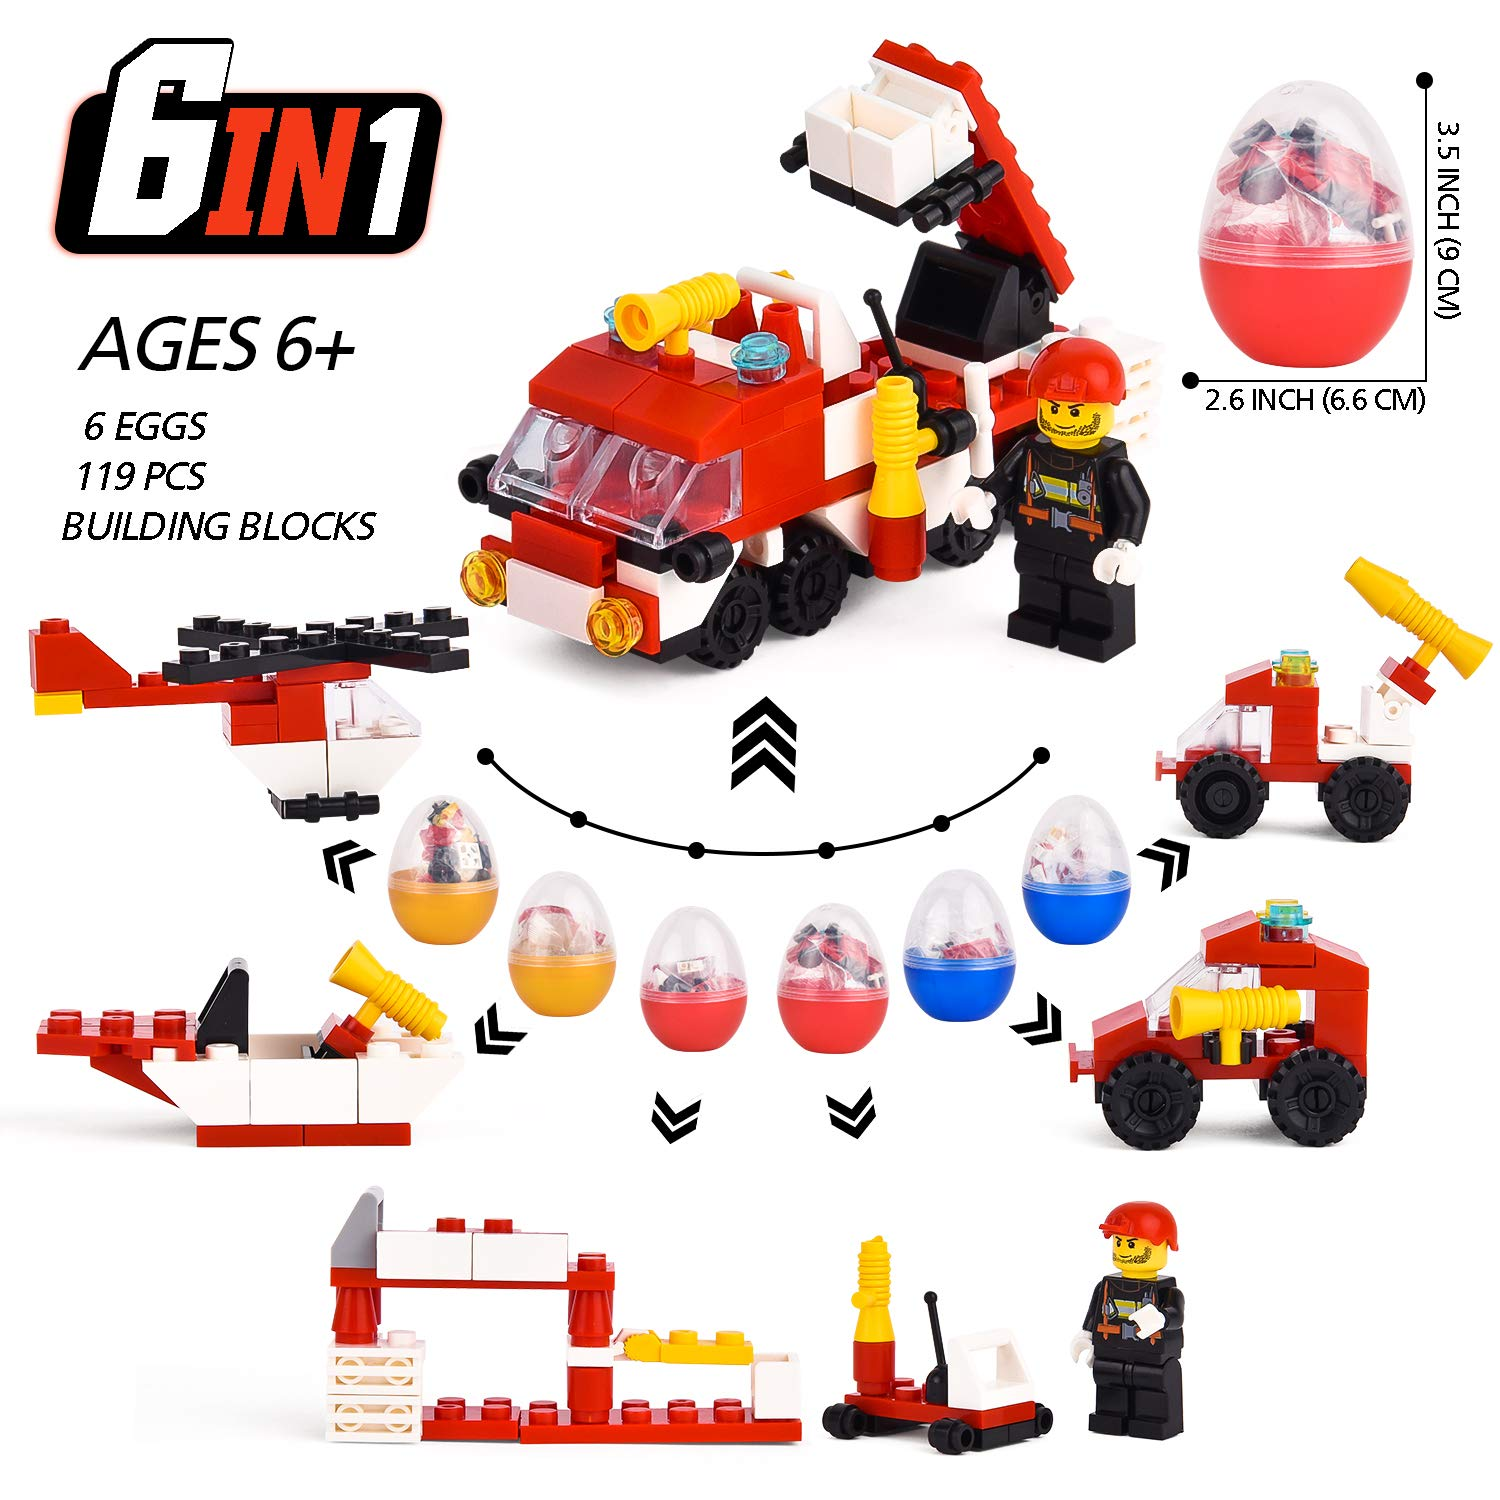 FILWO Easter Eggs, 6 PCS Eggs Toy Surprise Eggs for Boys Easter Toys Basket Fillers 3.5 Inchs Plastic Eggs with Toy Car Inside Easter Egg Stuffer 119 PCS Building Block Fire Truck Party Supplies (Red)